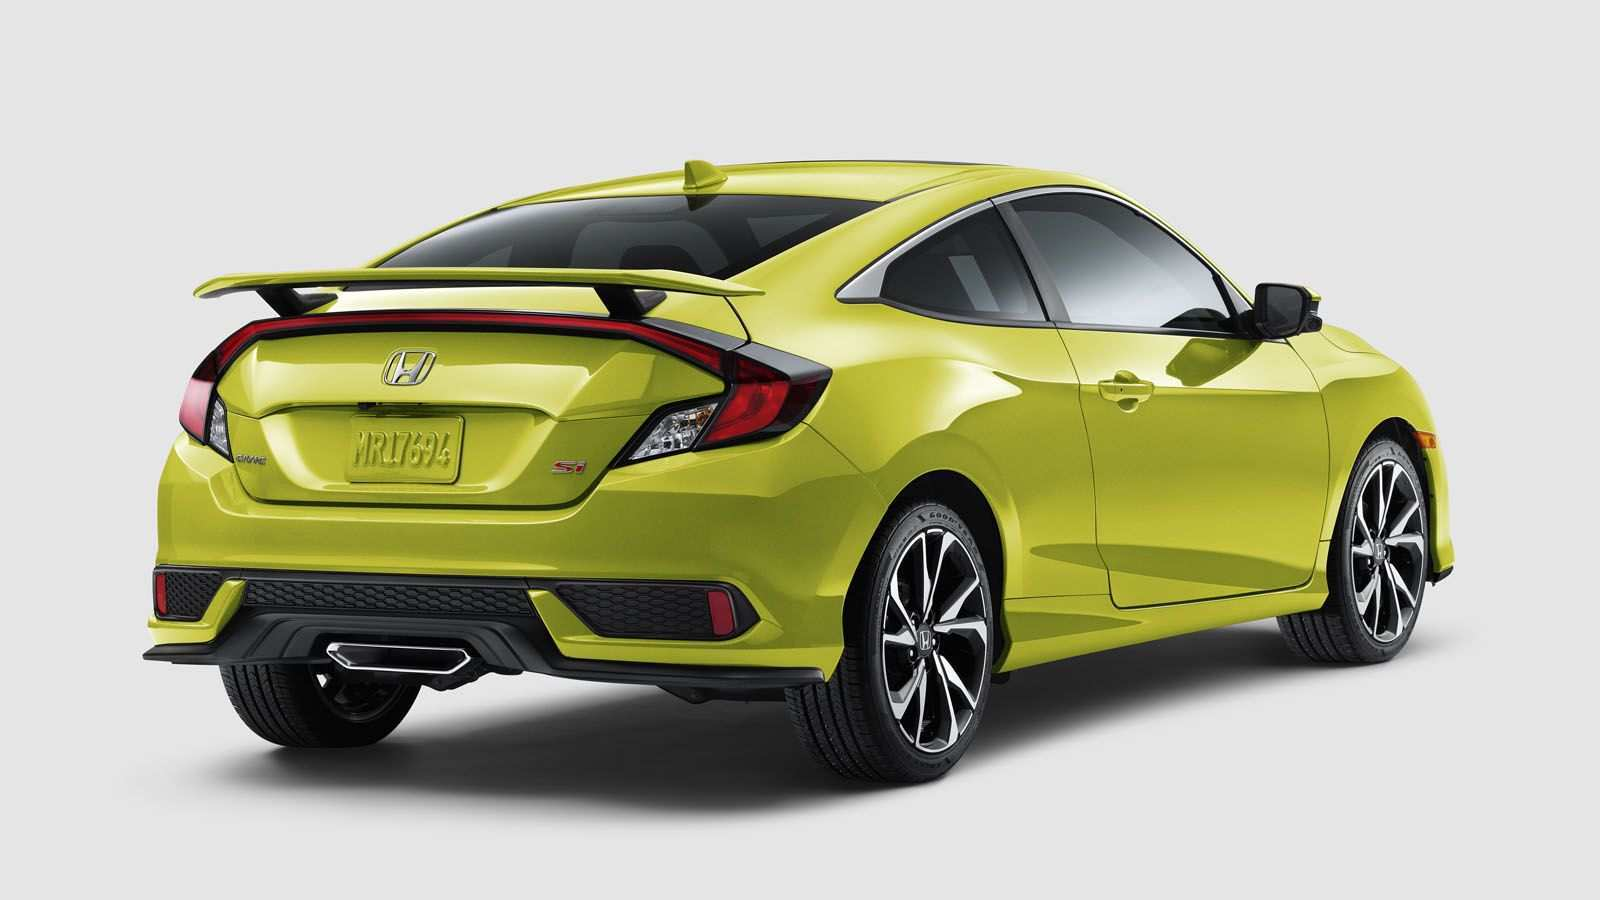 95 All New 2019 Honda Civic Volume Knob Redesign Price And Review Prices for 2019 Honda Civic Volume Knob Redesign Price And Review